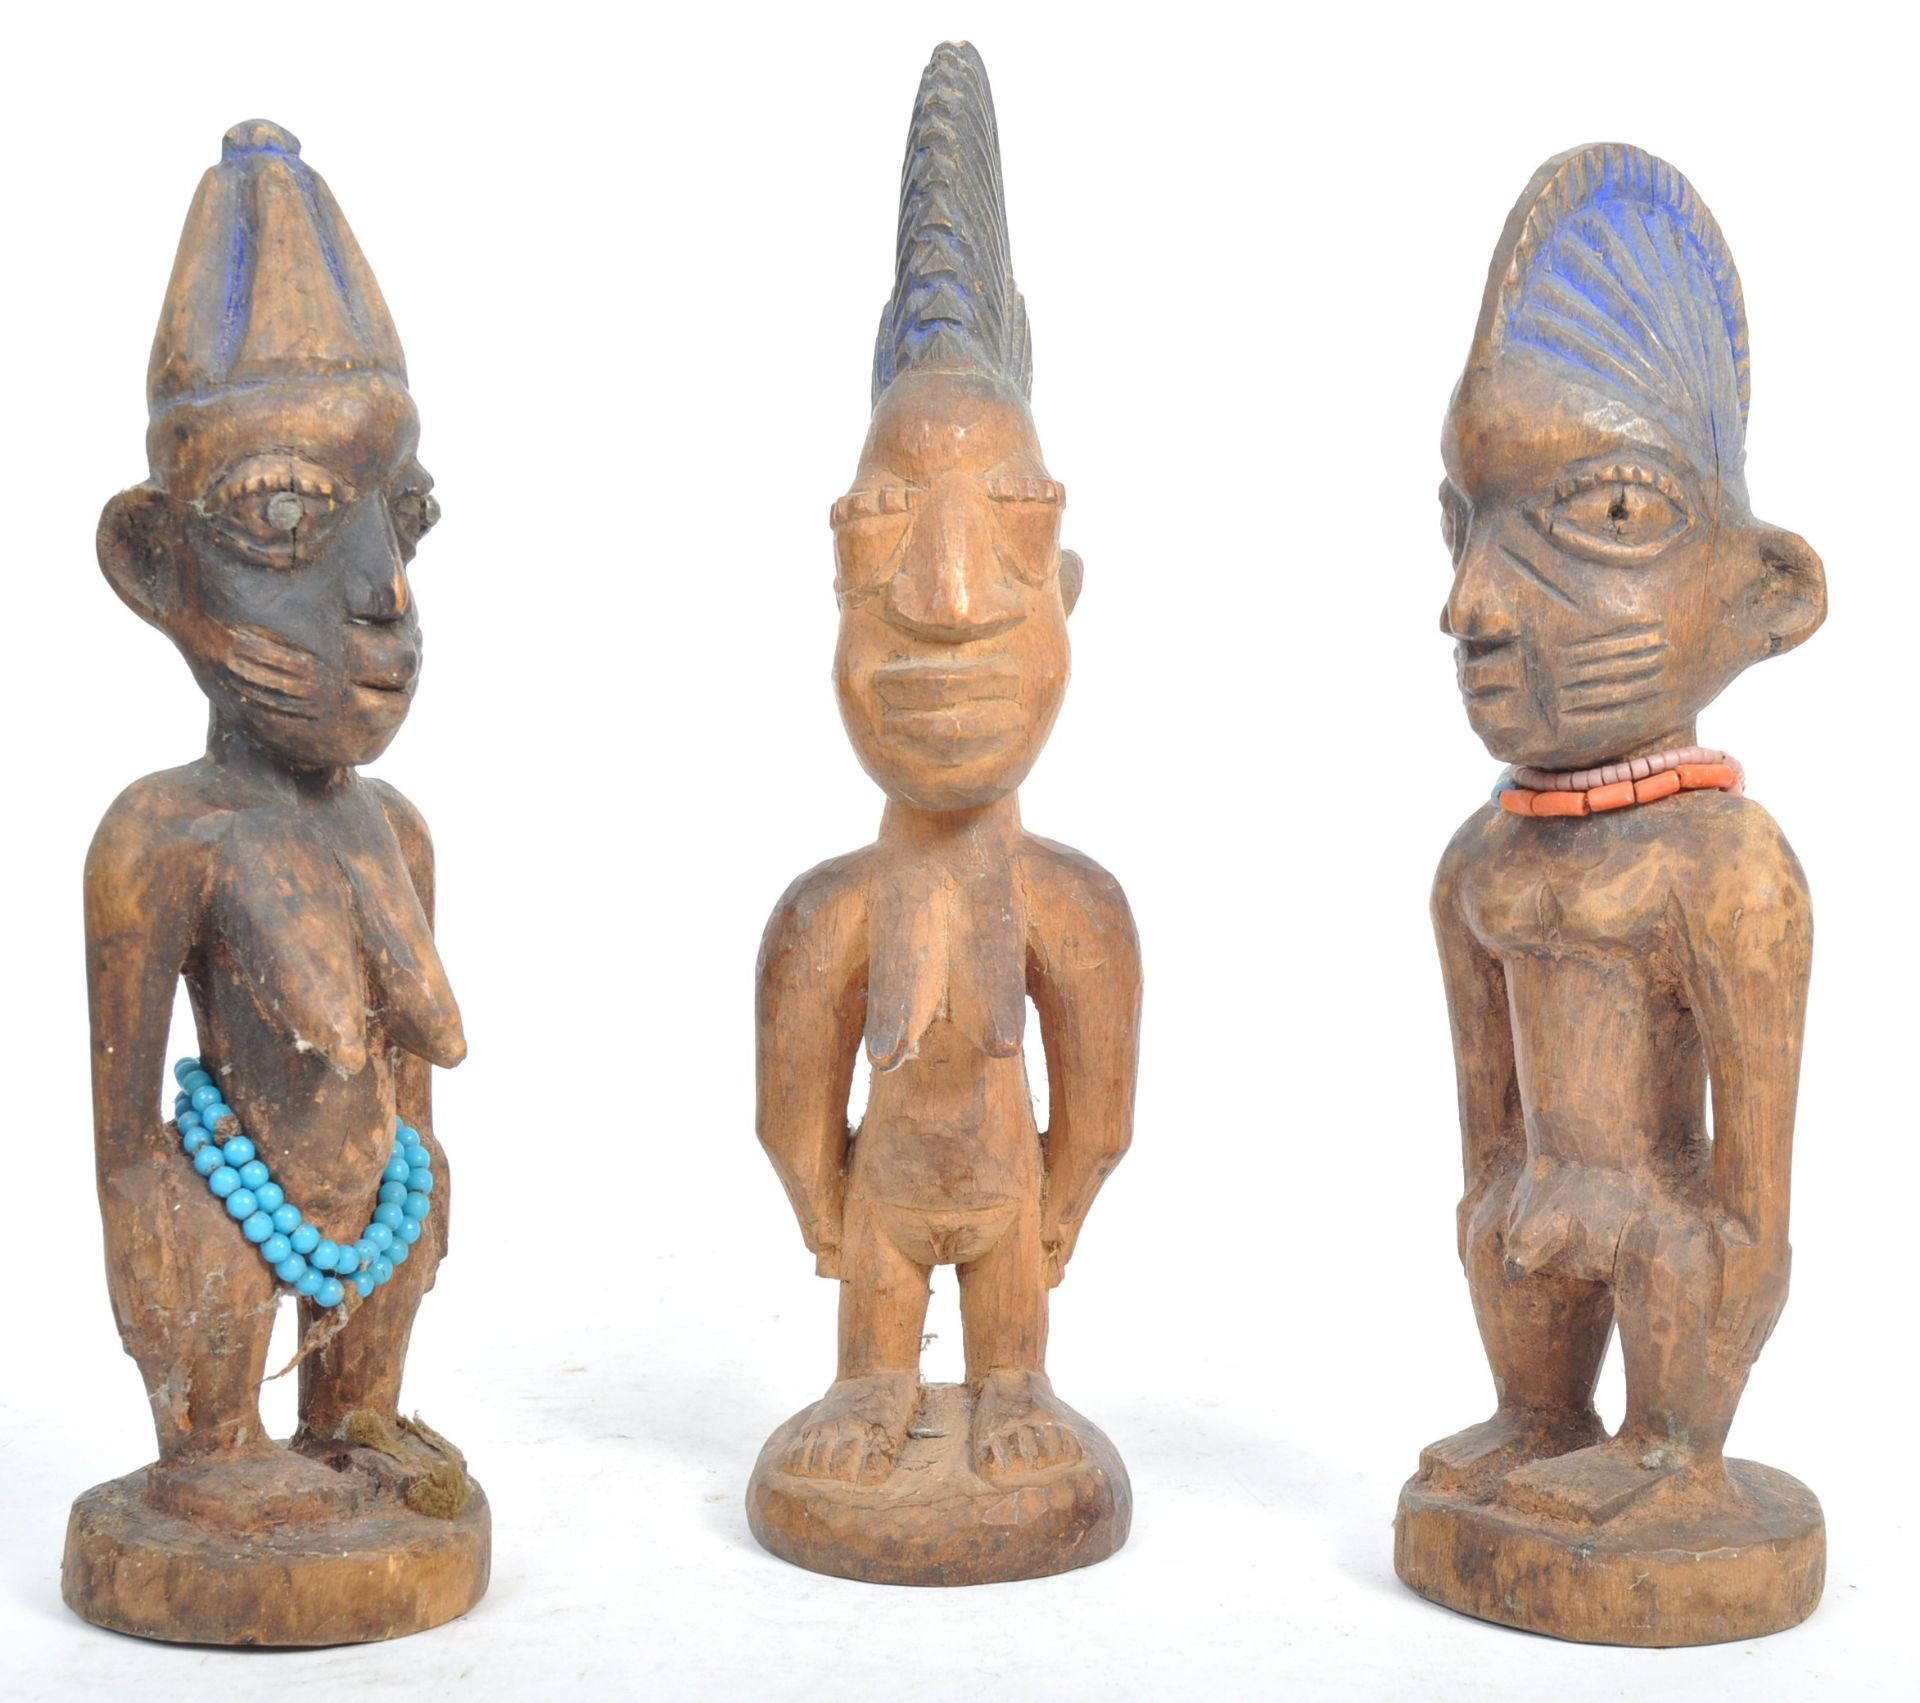 Los 537 - TRIBAL ANTIQUITIES - TRIO OF YORUBA IBEJI TRIBAL FIGURES